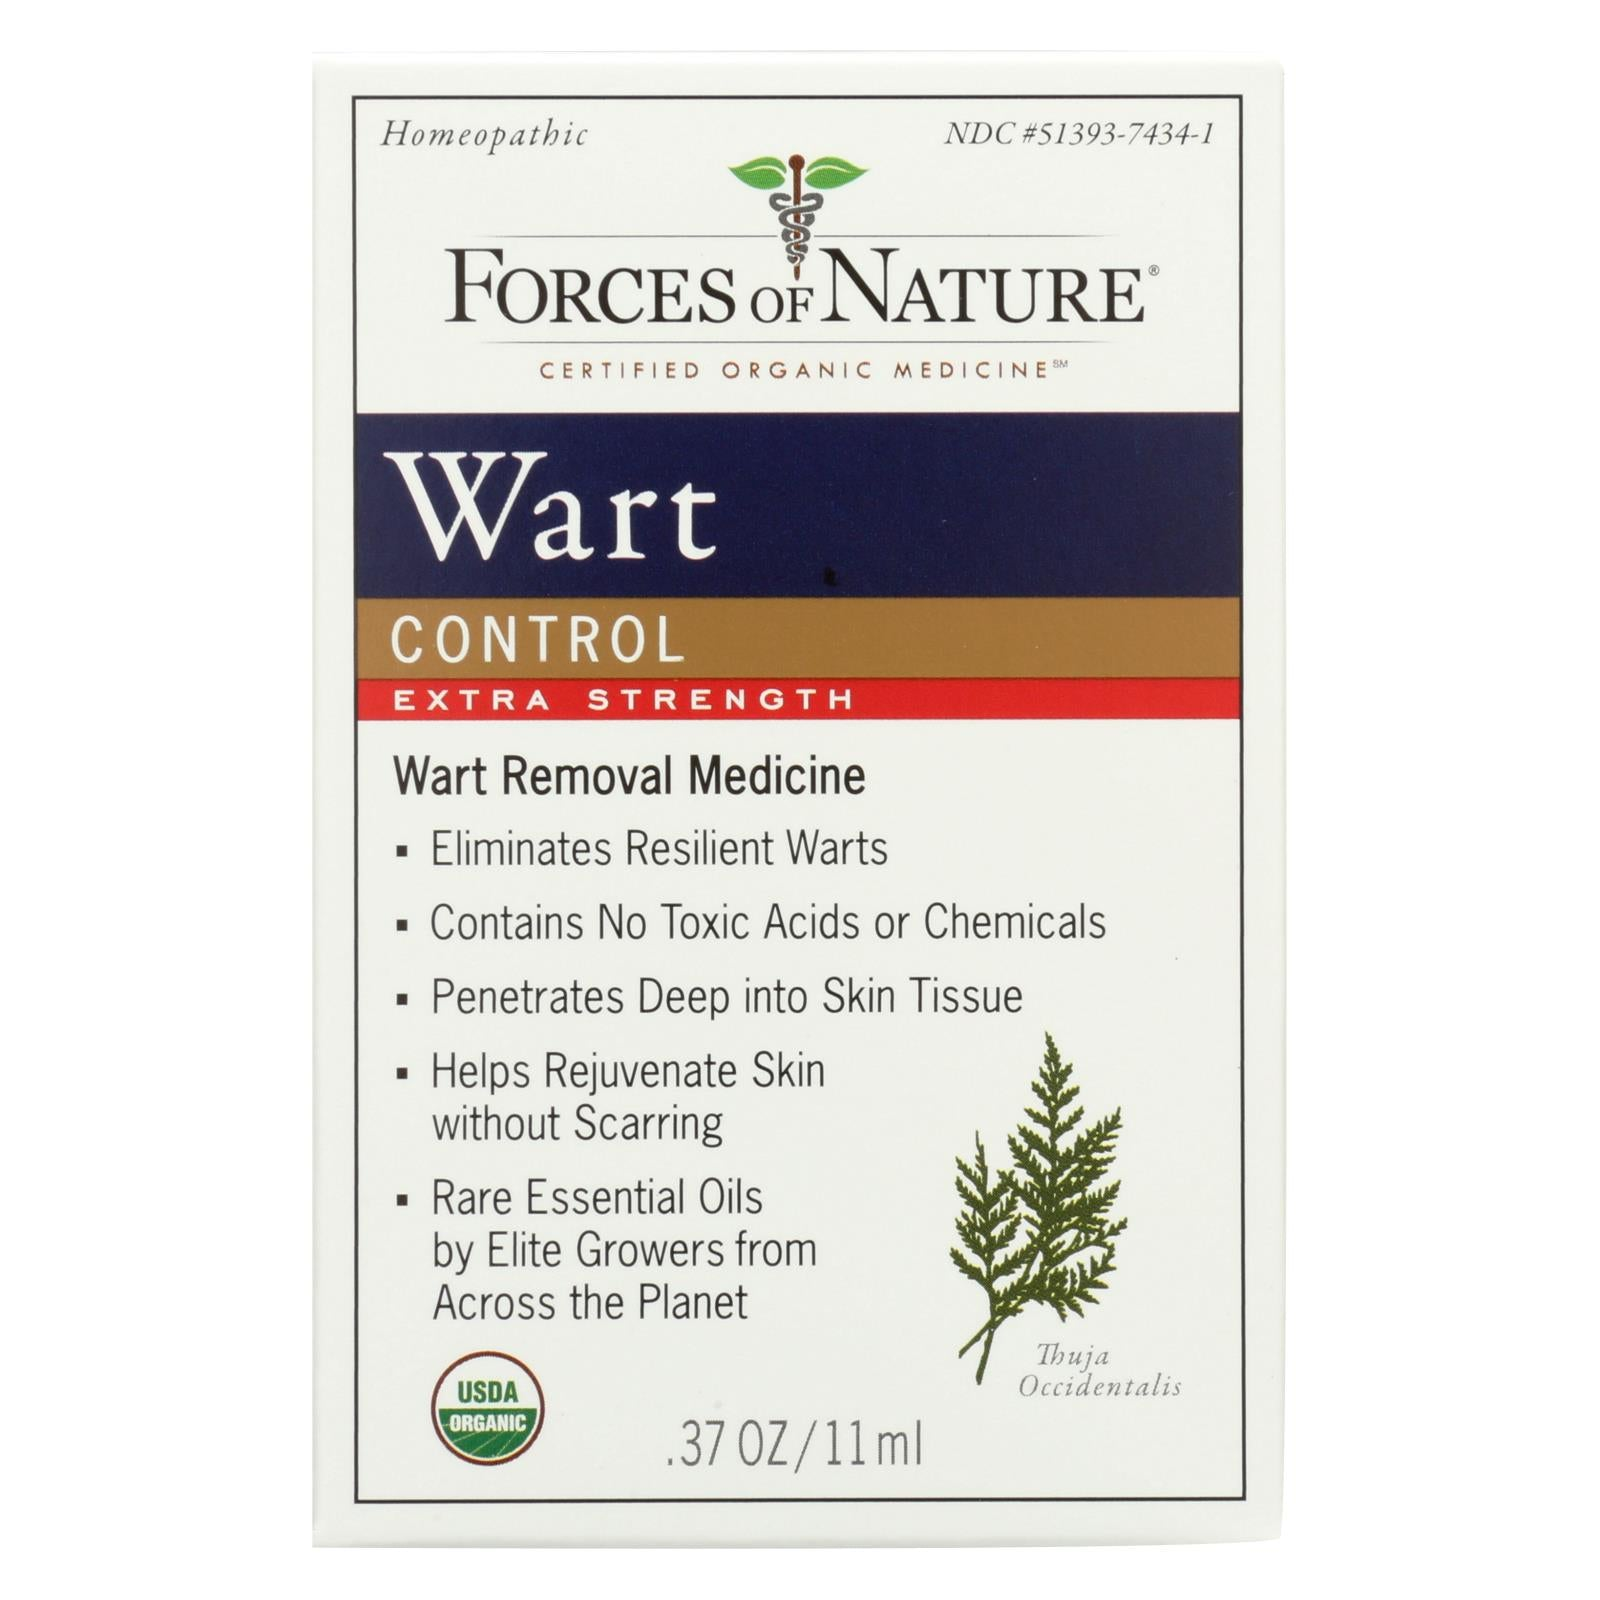 Thuja Occidentalis For Warts